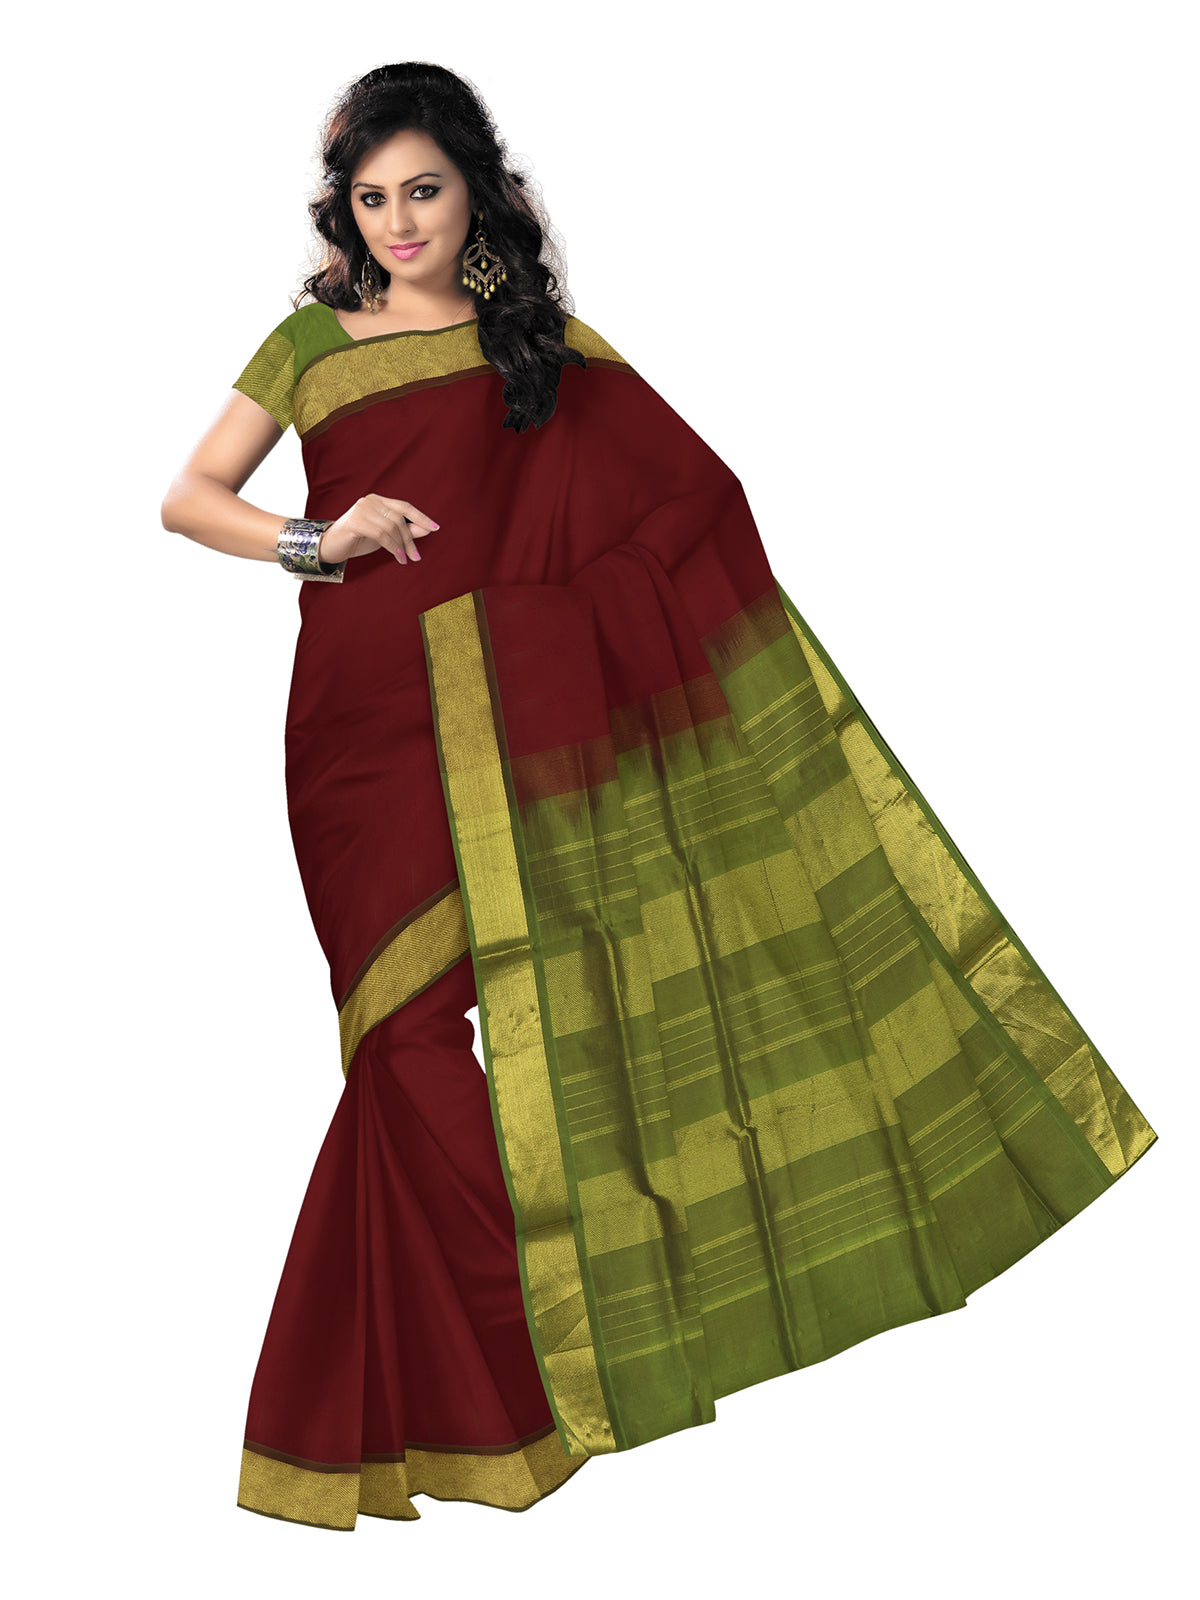 59ded4dc2bbf1 Buy silk cotton saree -Maroon and Mehandi Green with simple zari border at  Prashanti Sarees for only Rs. 3